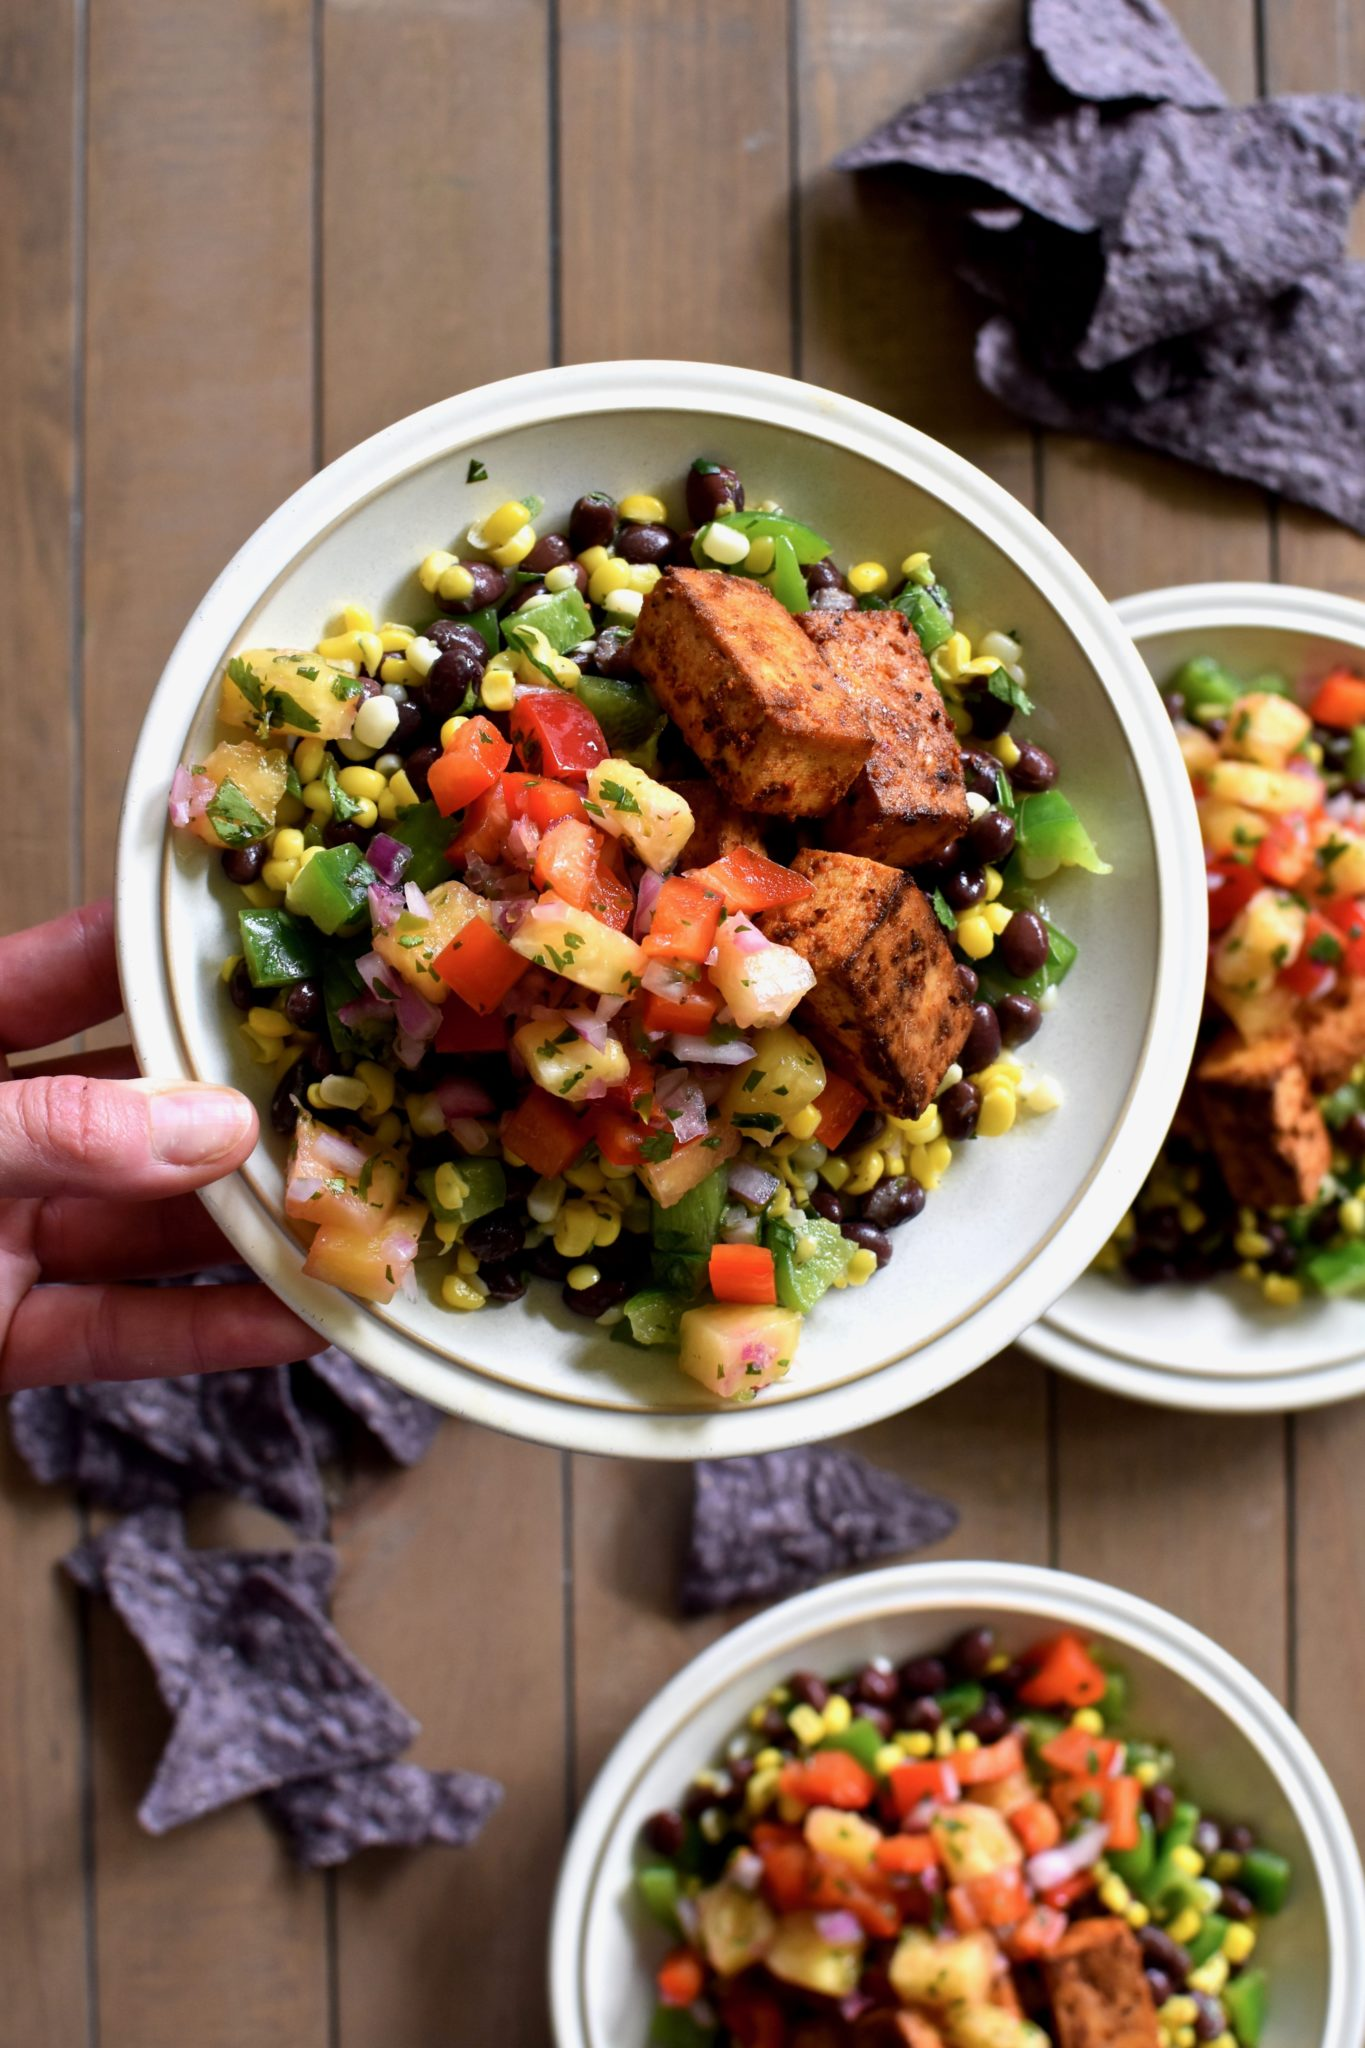 chili-spiced tofu bowl with pepper lime corn and pineapple salsa // cait's plate